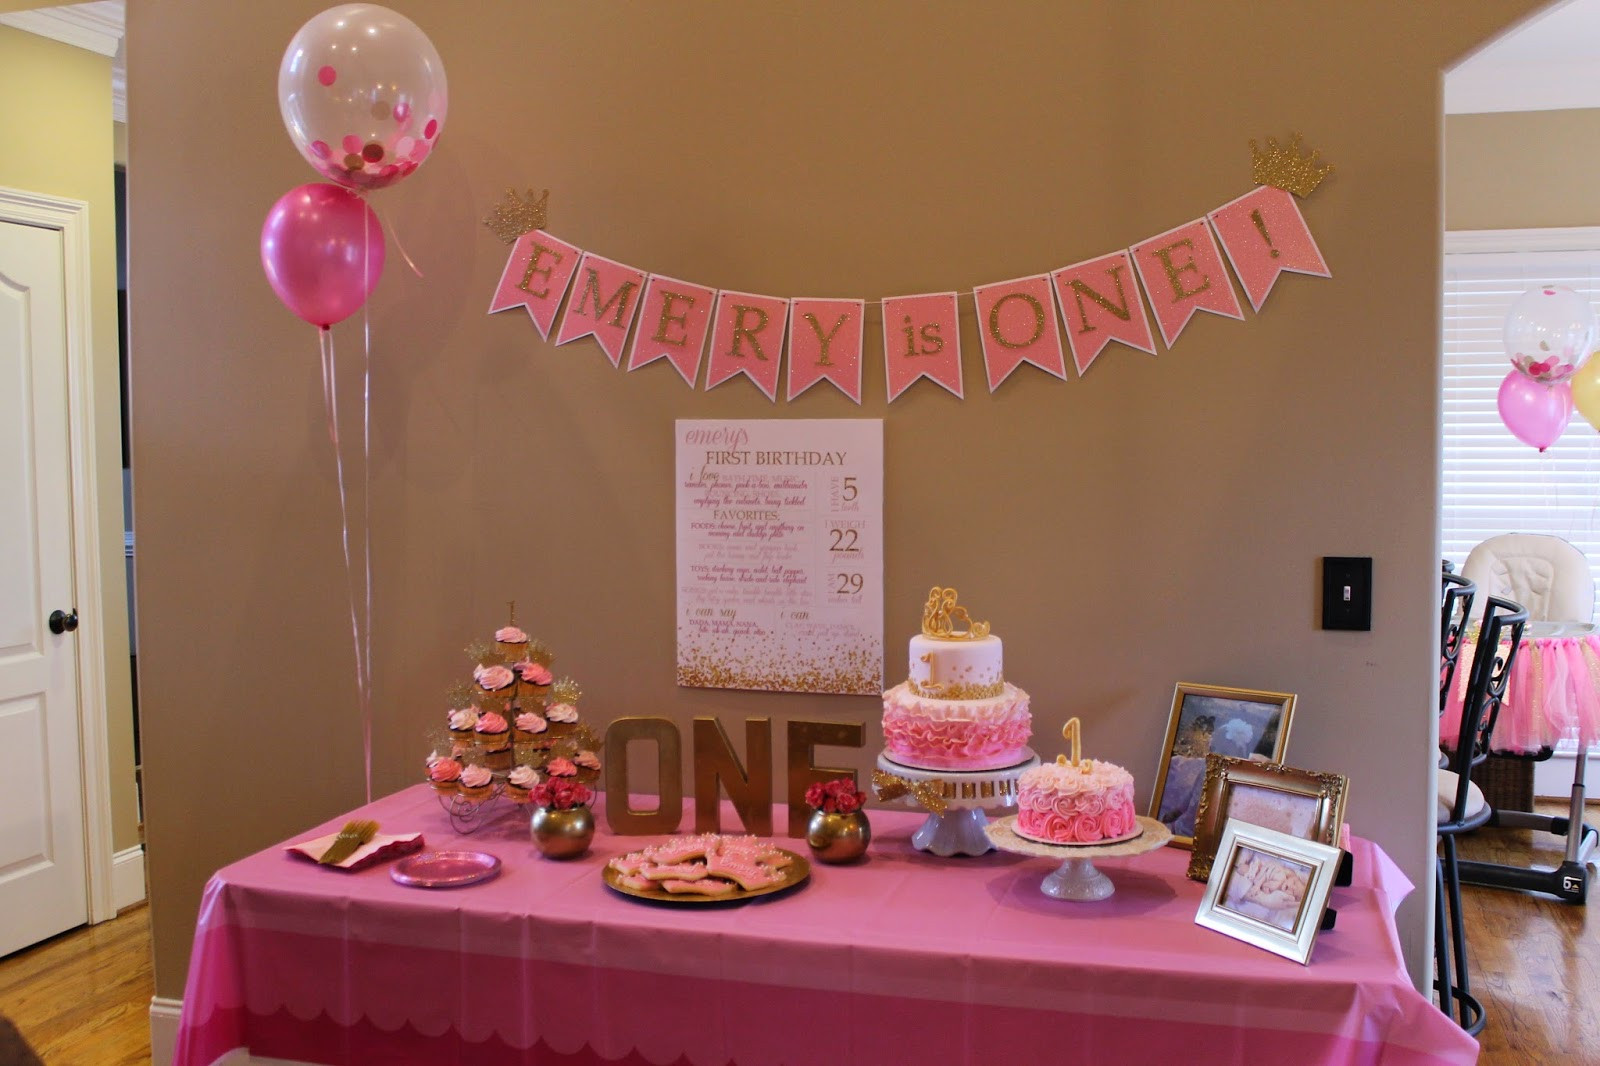 Best ideas about 1st Birthday Party . Save or Pin Richly Blessed Emery s 1st Birthday Party Now.